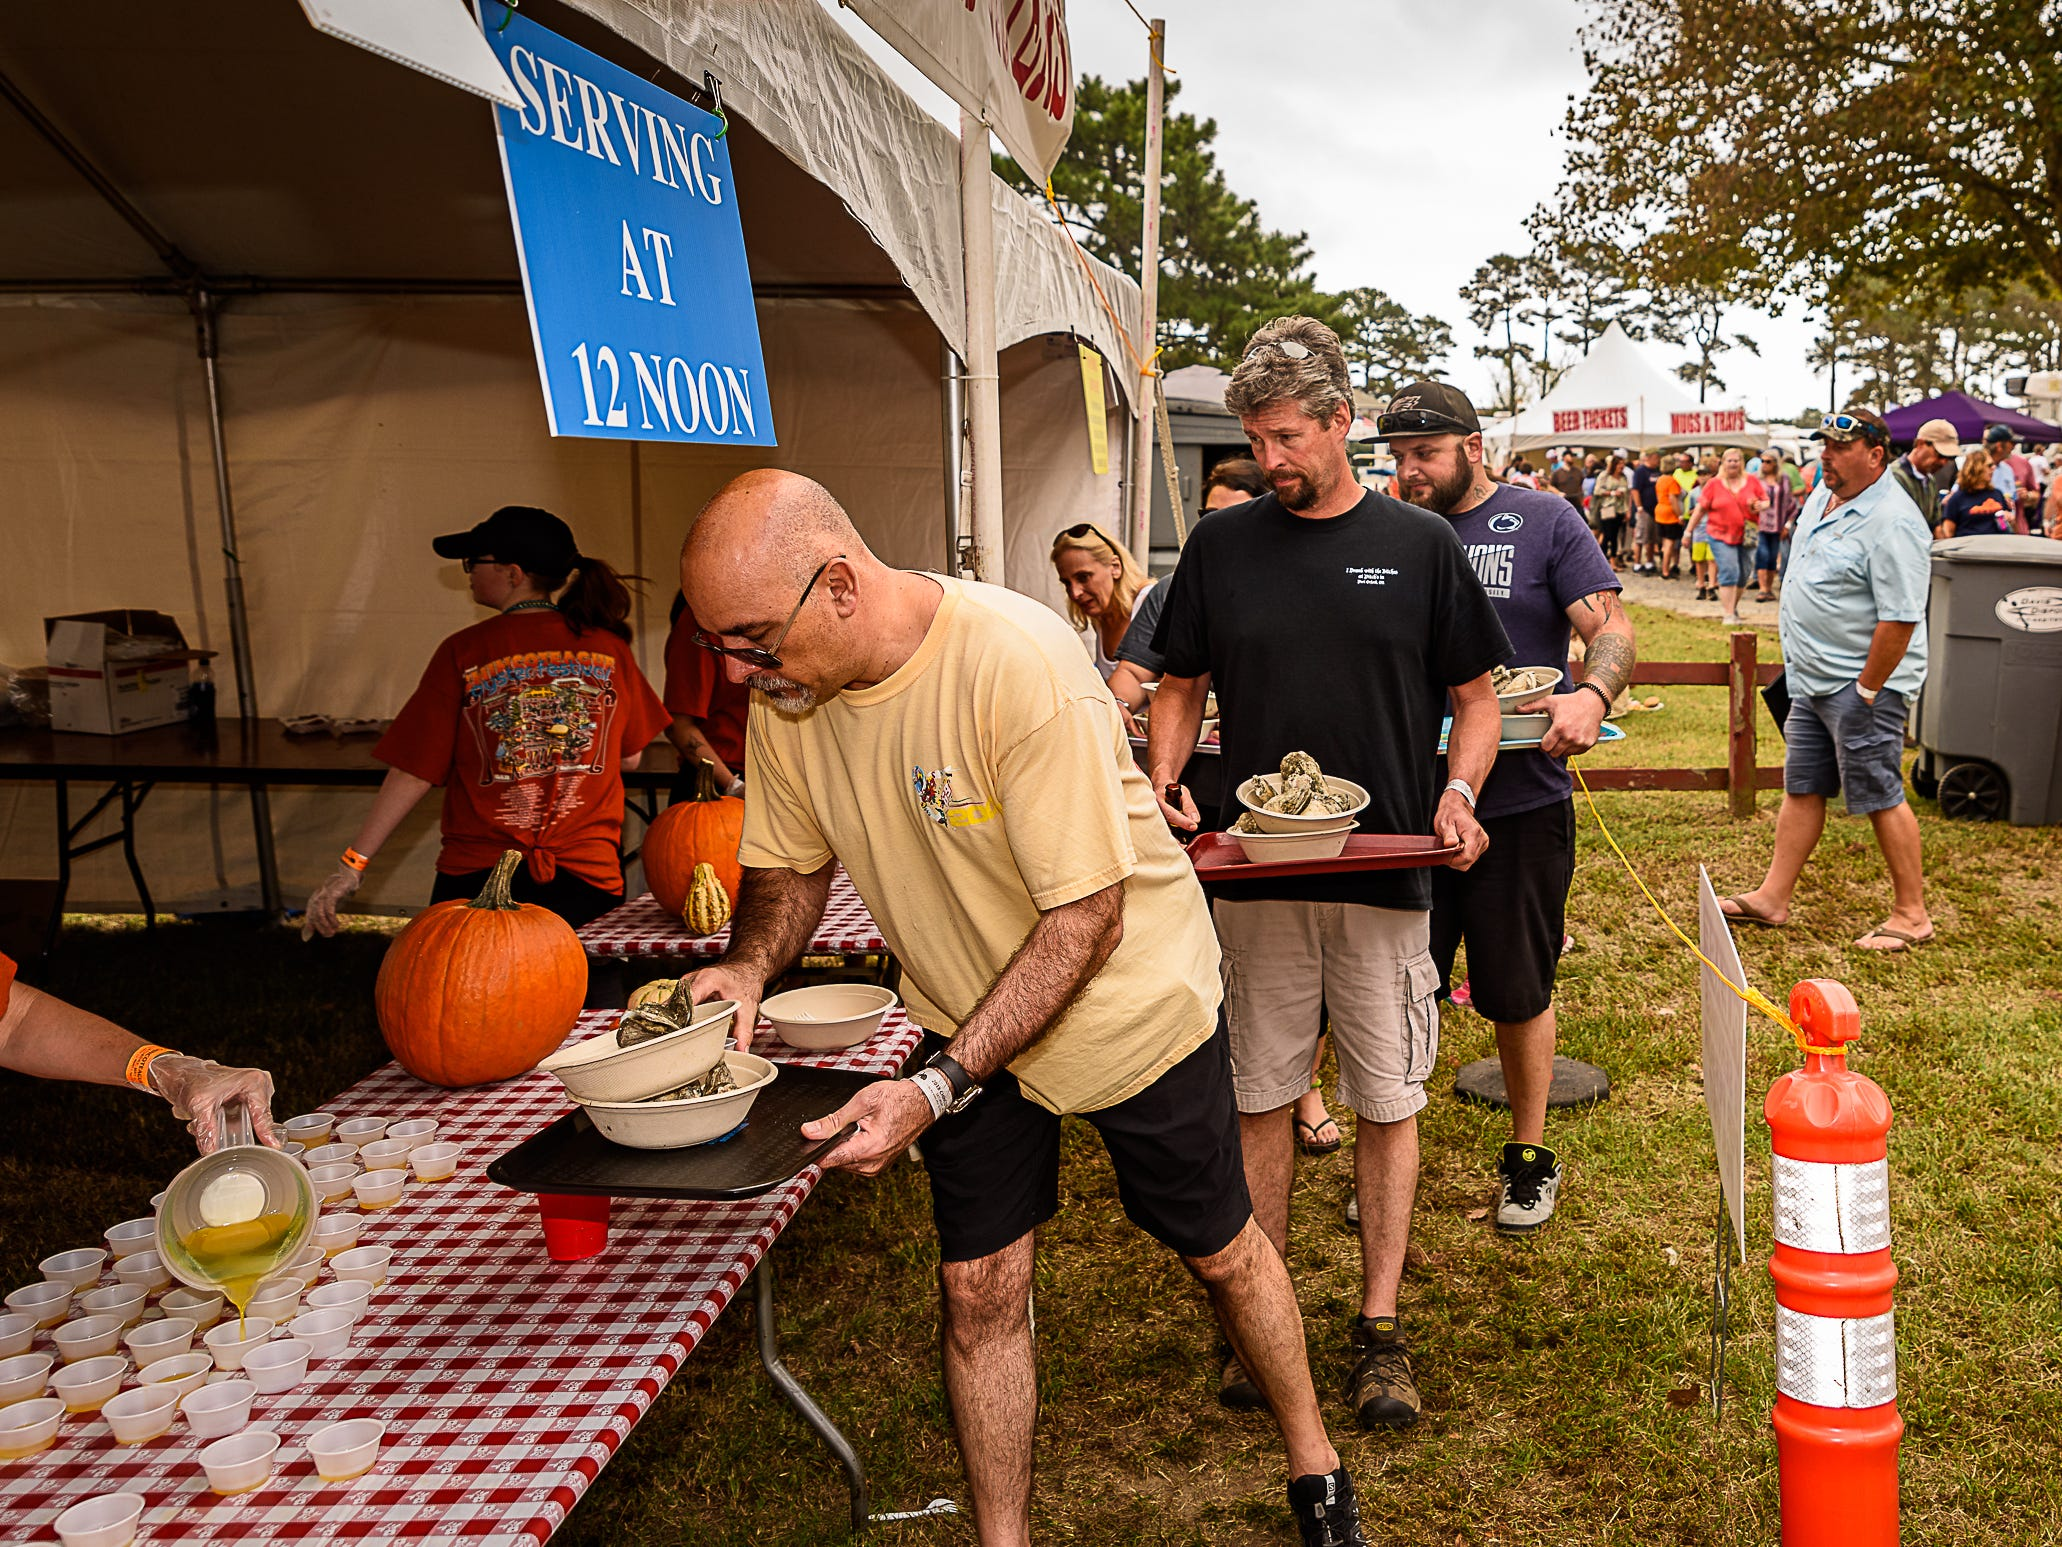 Festival-goers pick up steamed oysters at the event in Chincoteague.